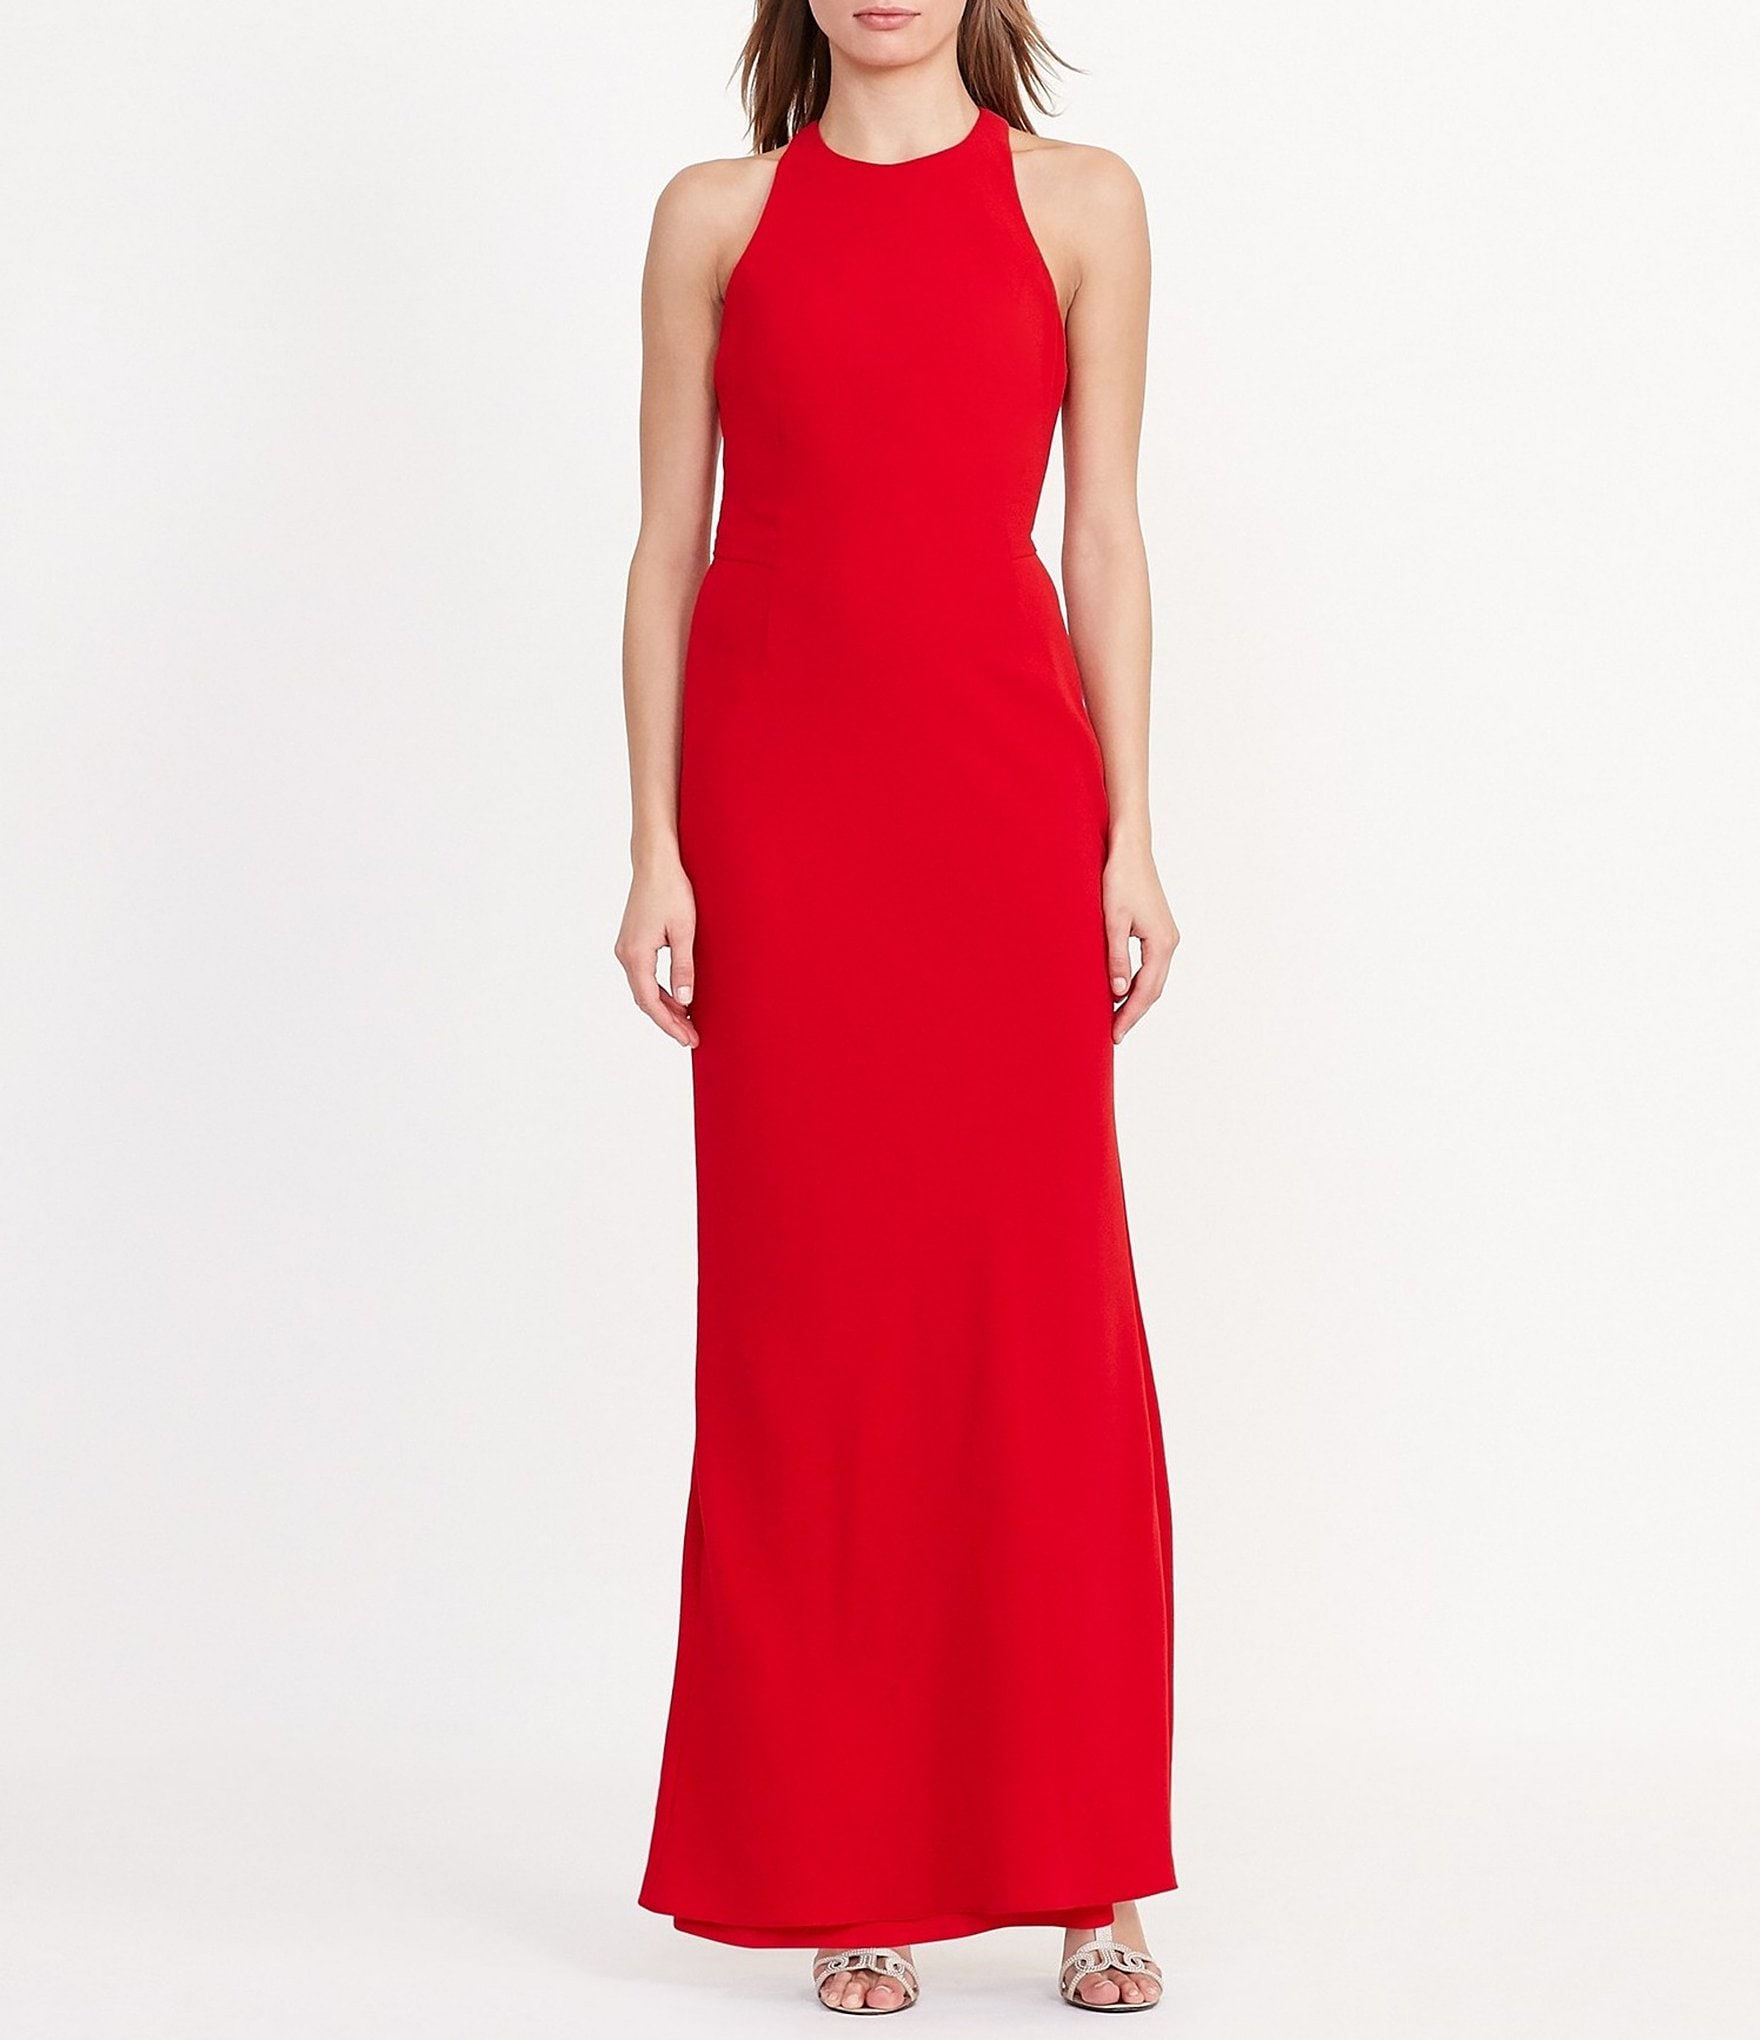 Women\'s Formal Halter Dresses & Gowns | Dillards